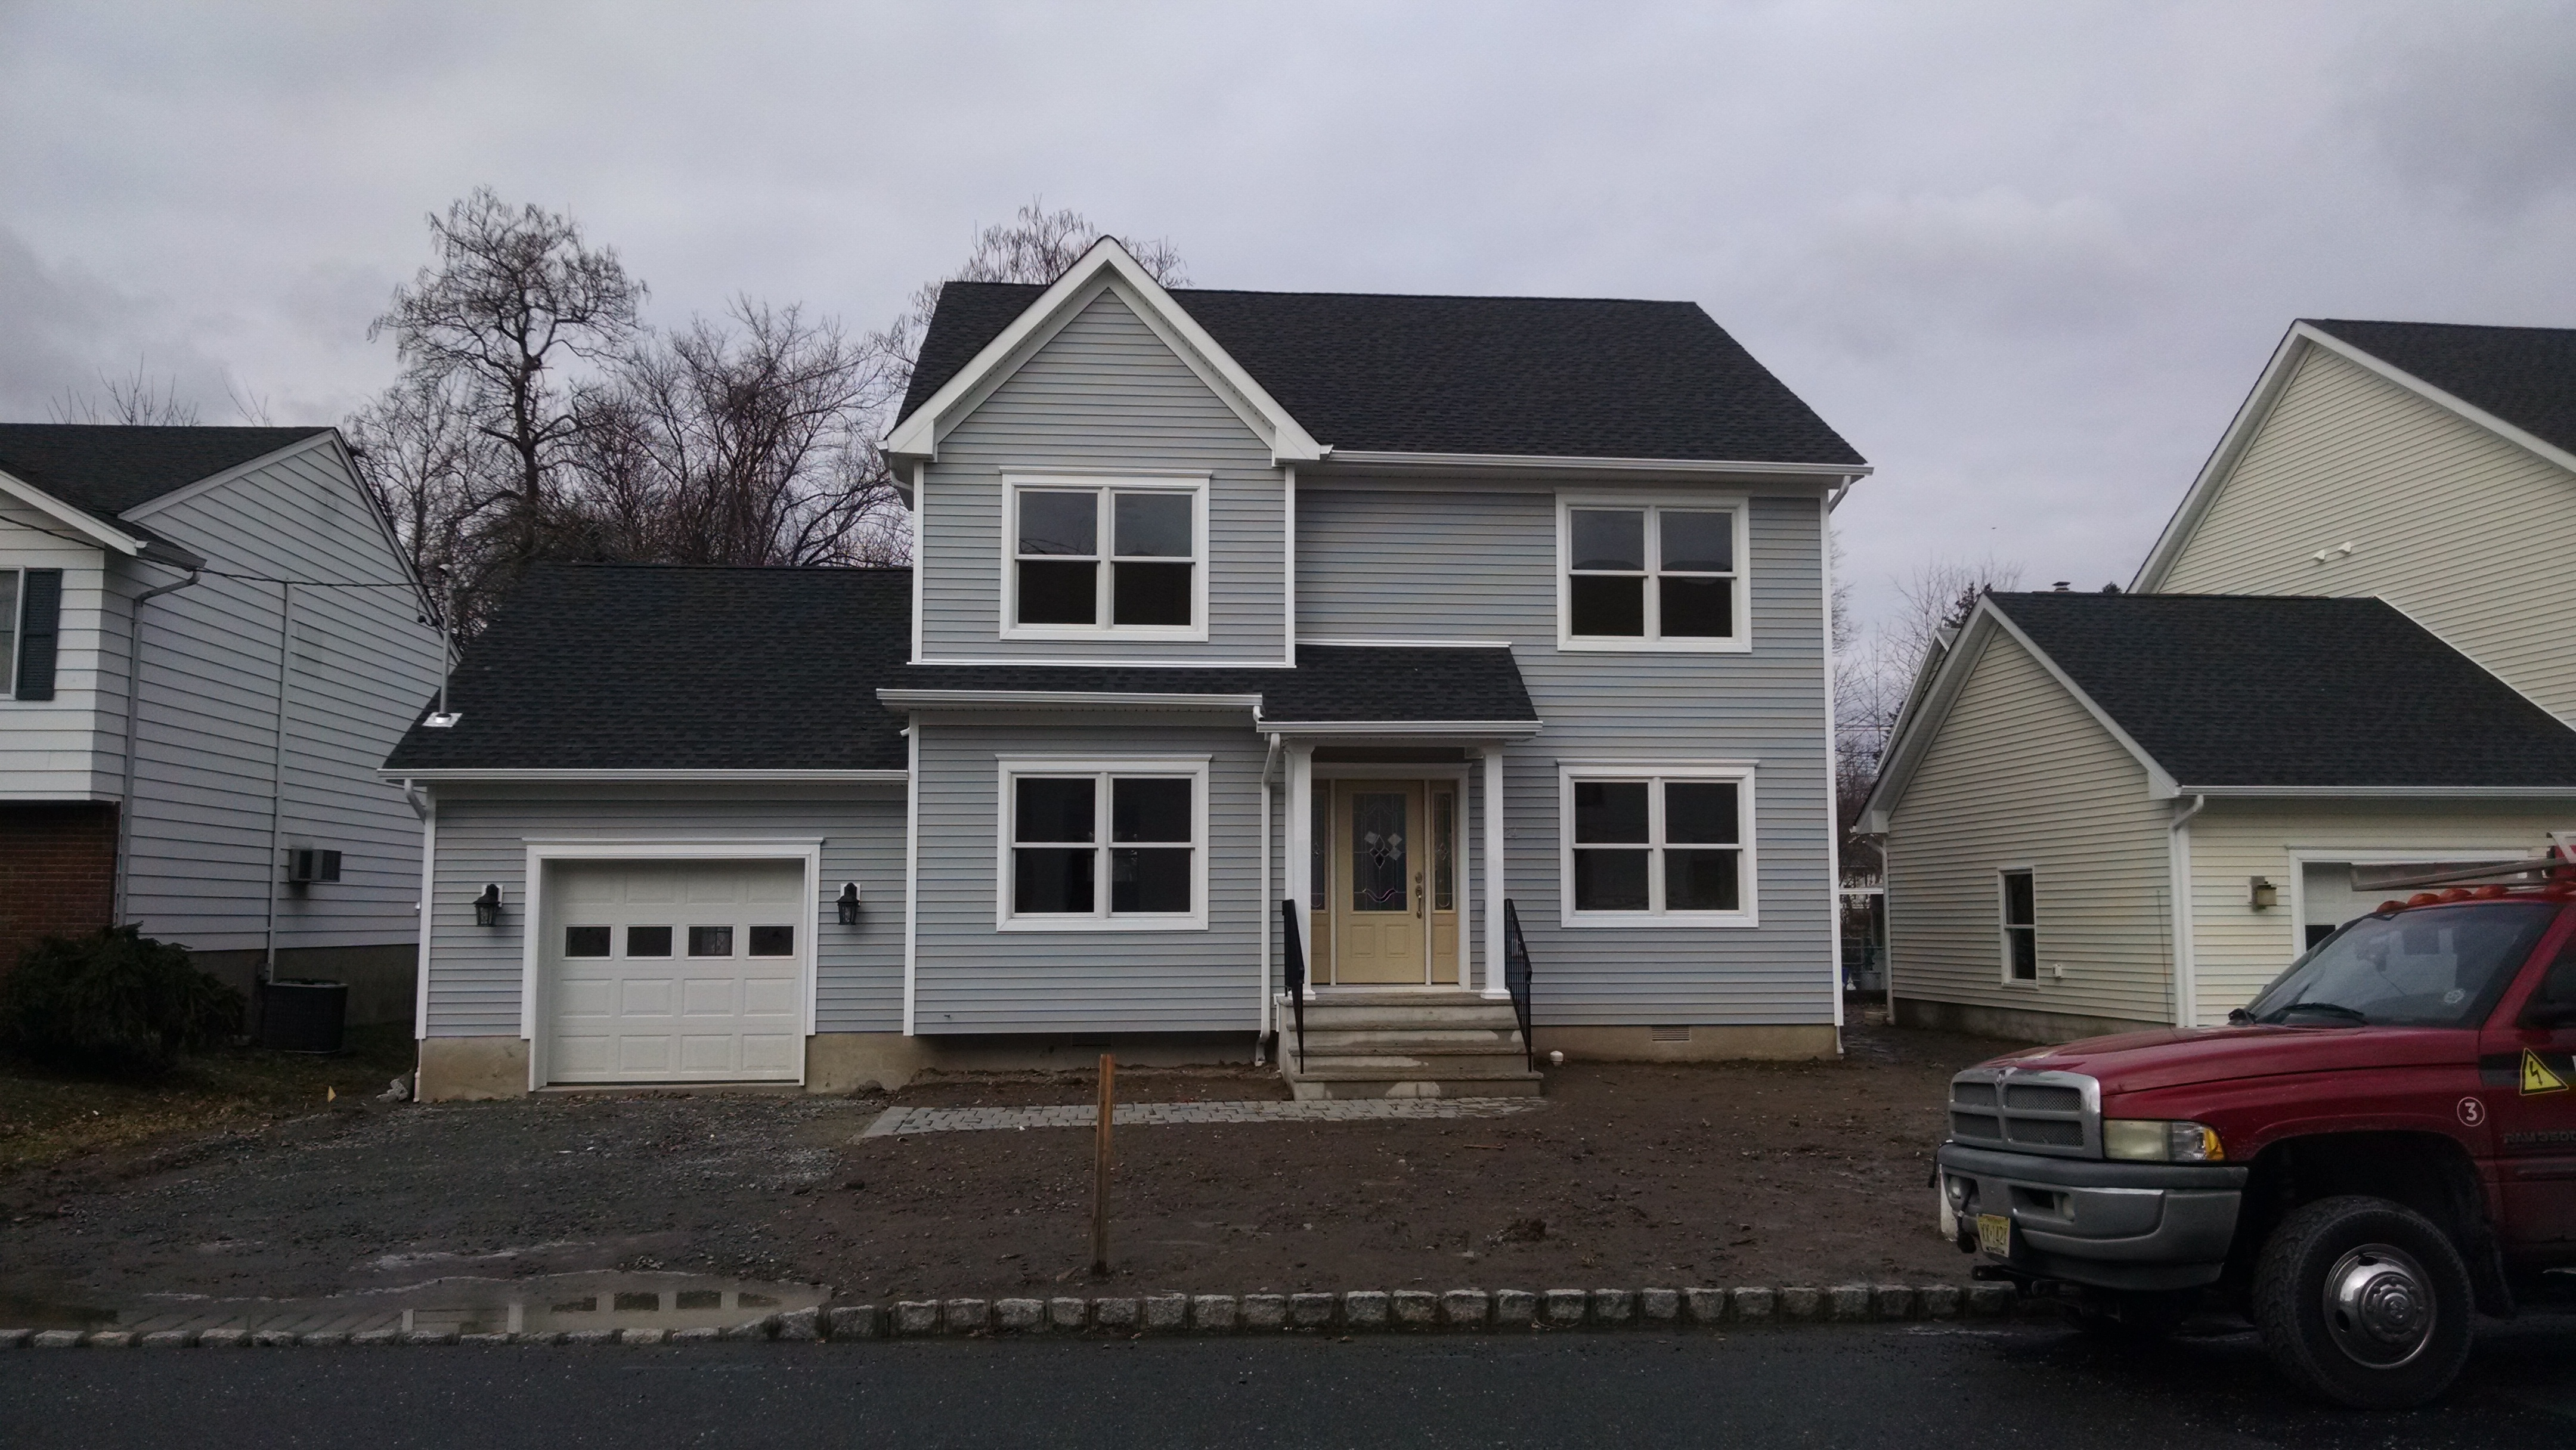 denville single parents The new york times has 29 homes for sale in denville find the latest open houses, price reductions and homes new to the market with guidance from experts who live here too.